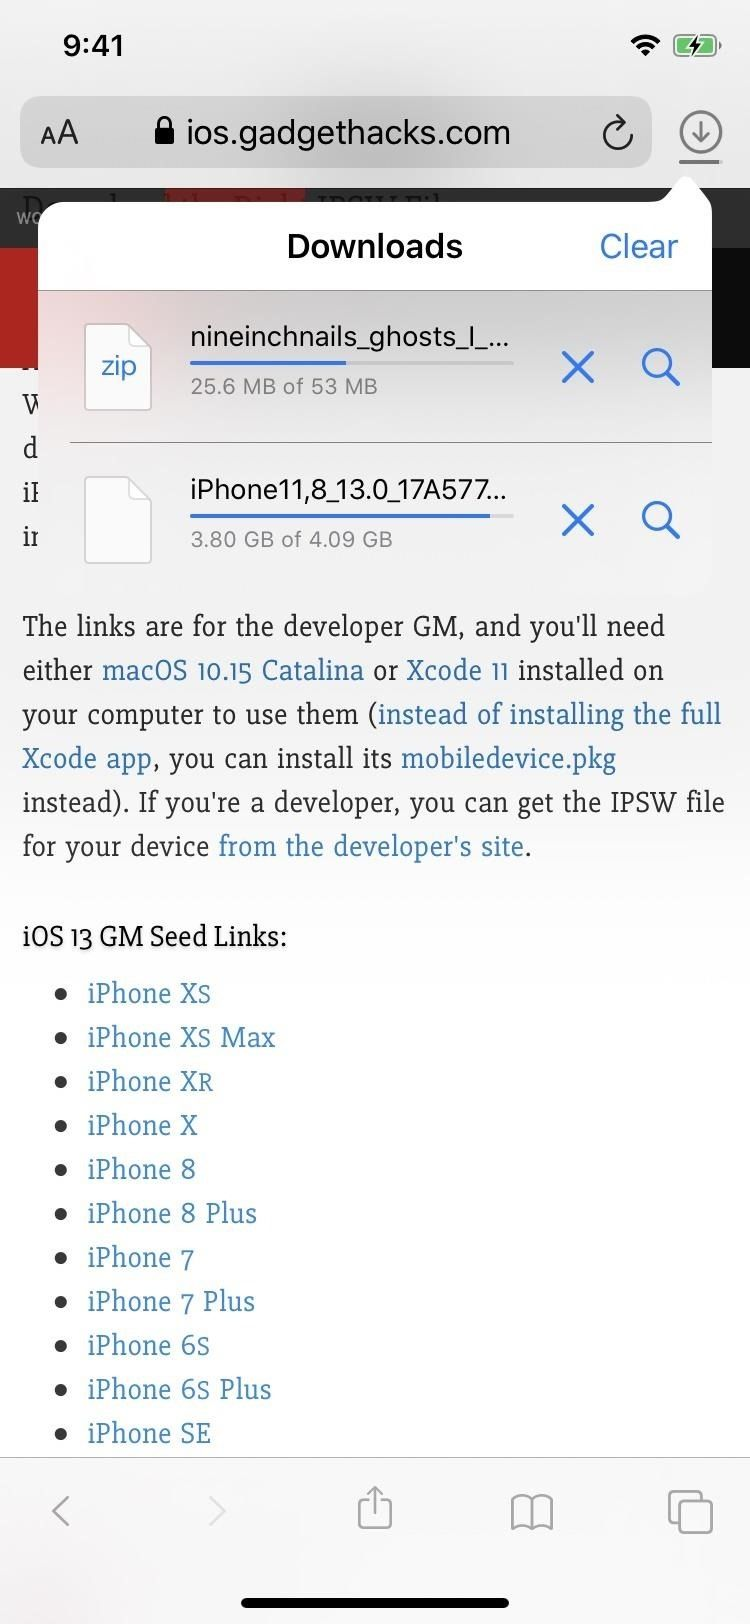 Apple has released today the GM Golden Master version of the soon-to-be-released macOS Catalina 1015 operating system for Macs a day after releasing the first beta of iOS 132 and iPadOS 132. Gm Gm Mobile App And Interactive Car Builder Gm Mobile App Interactive Carriers